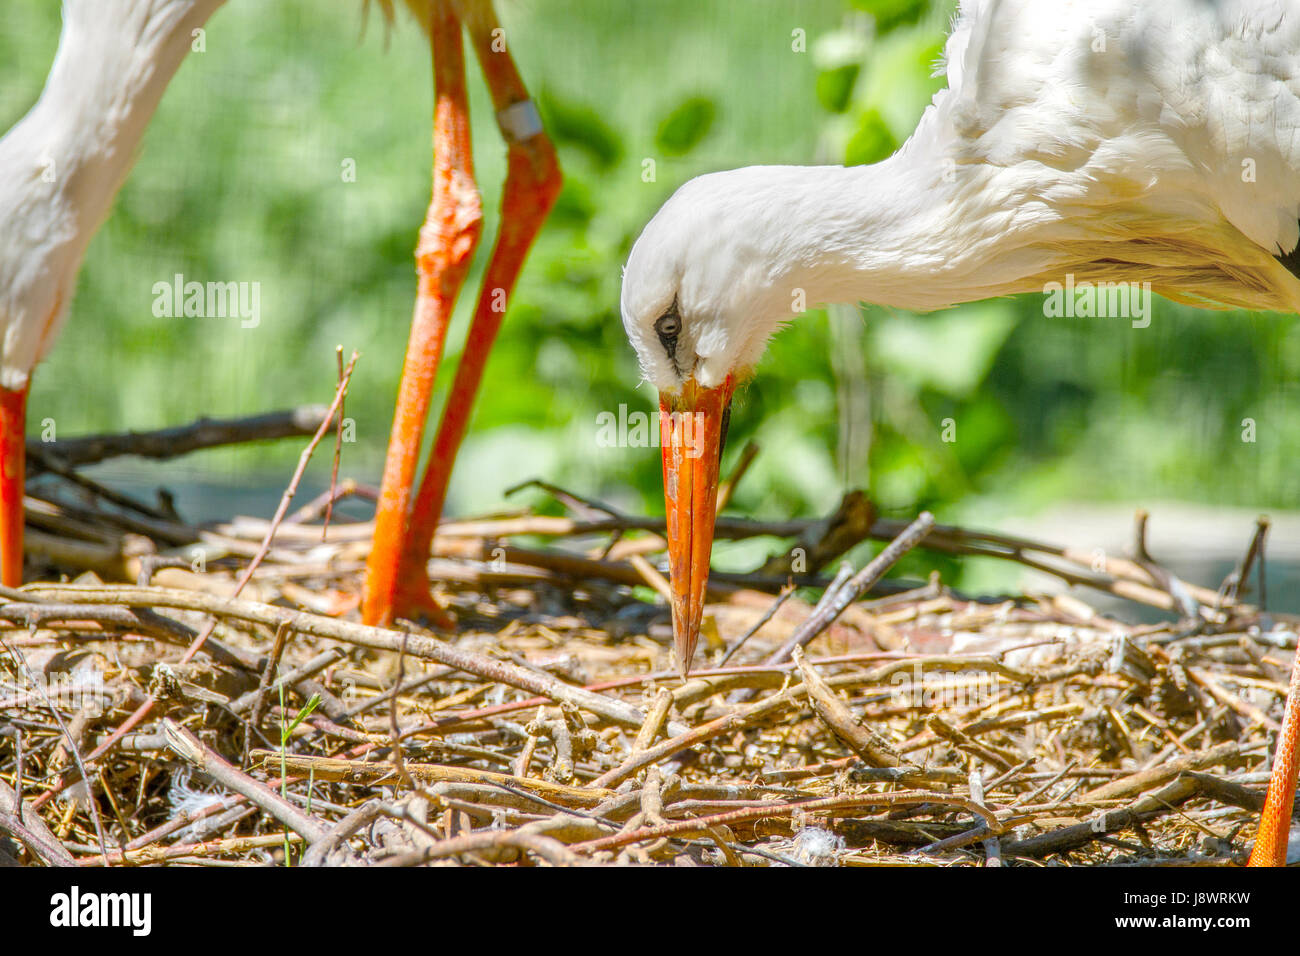 Image of a bird stork beak building a nest - Stock Image